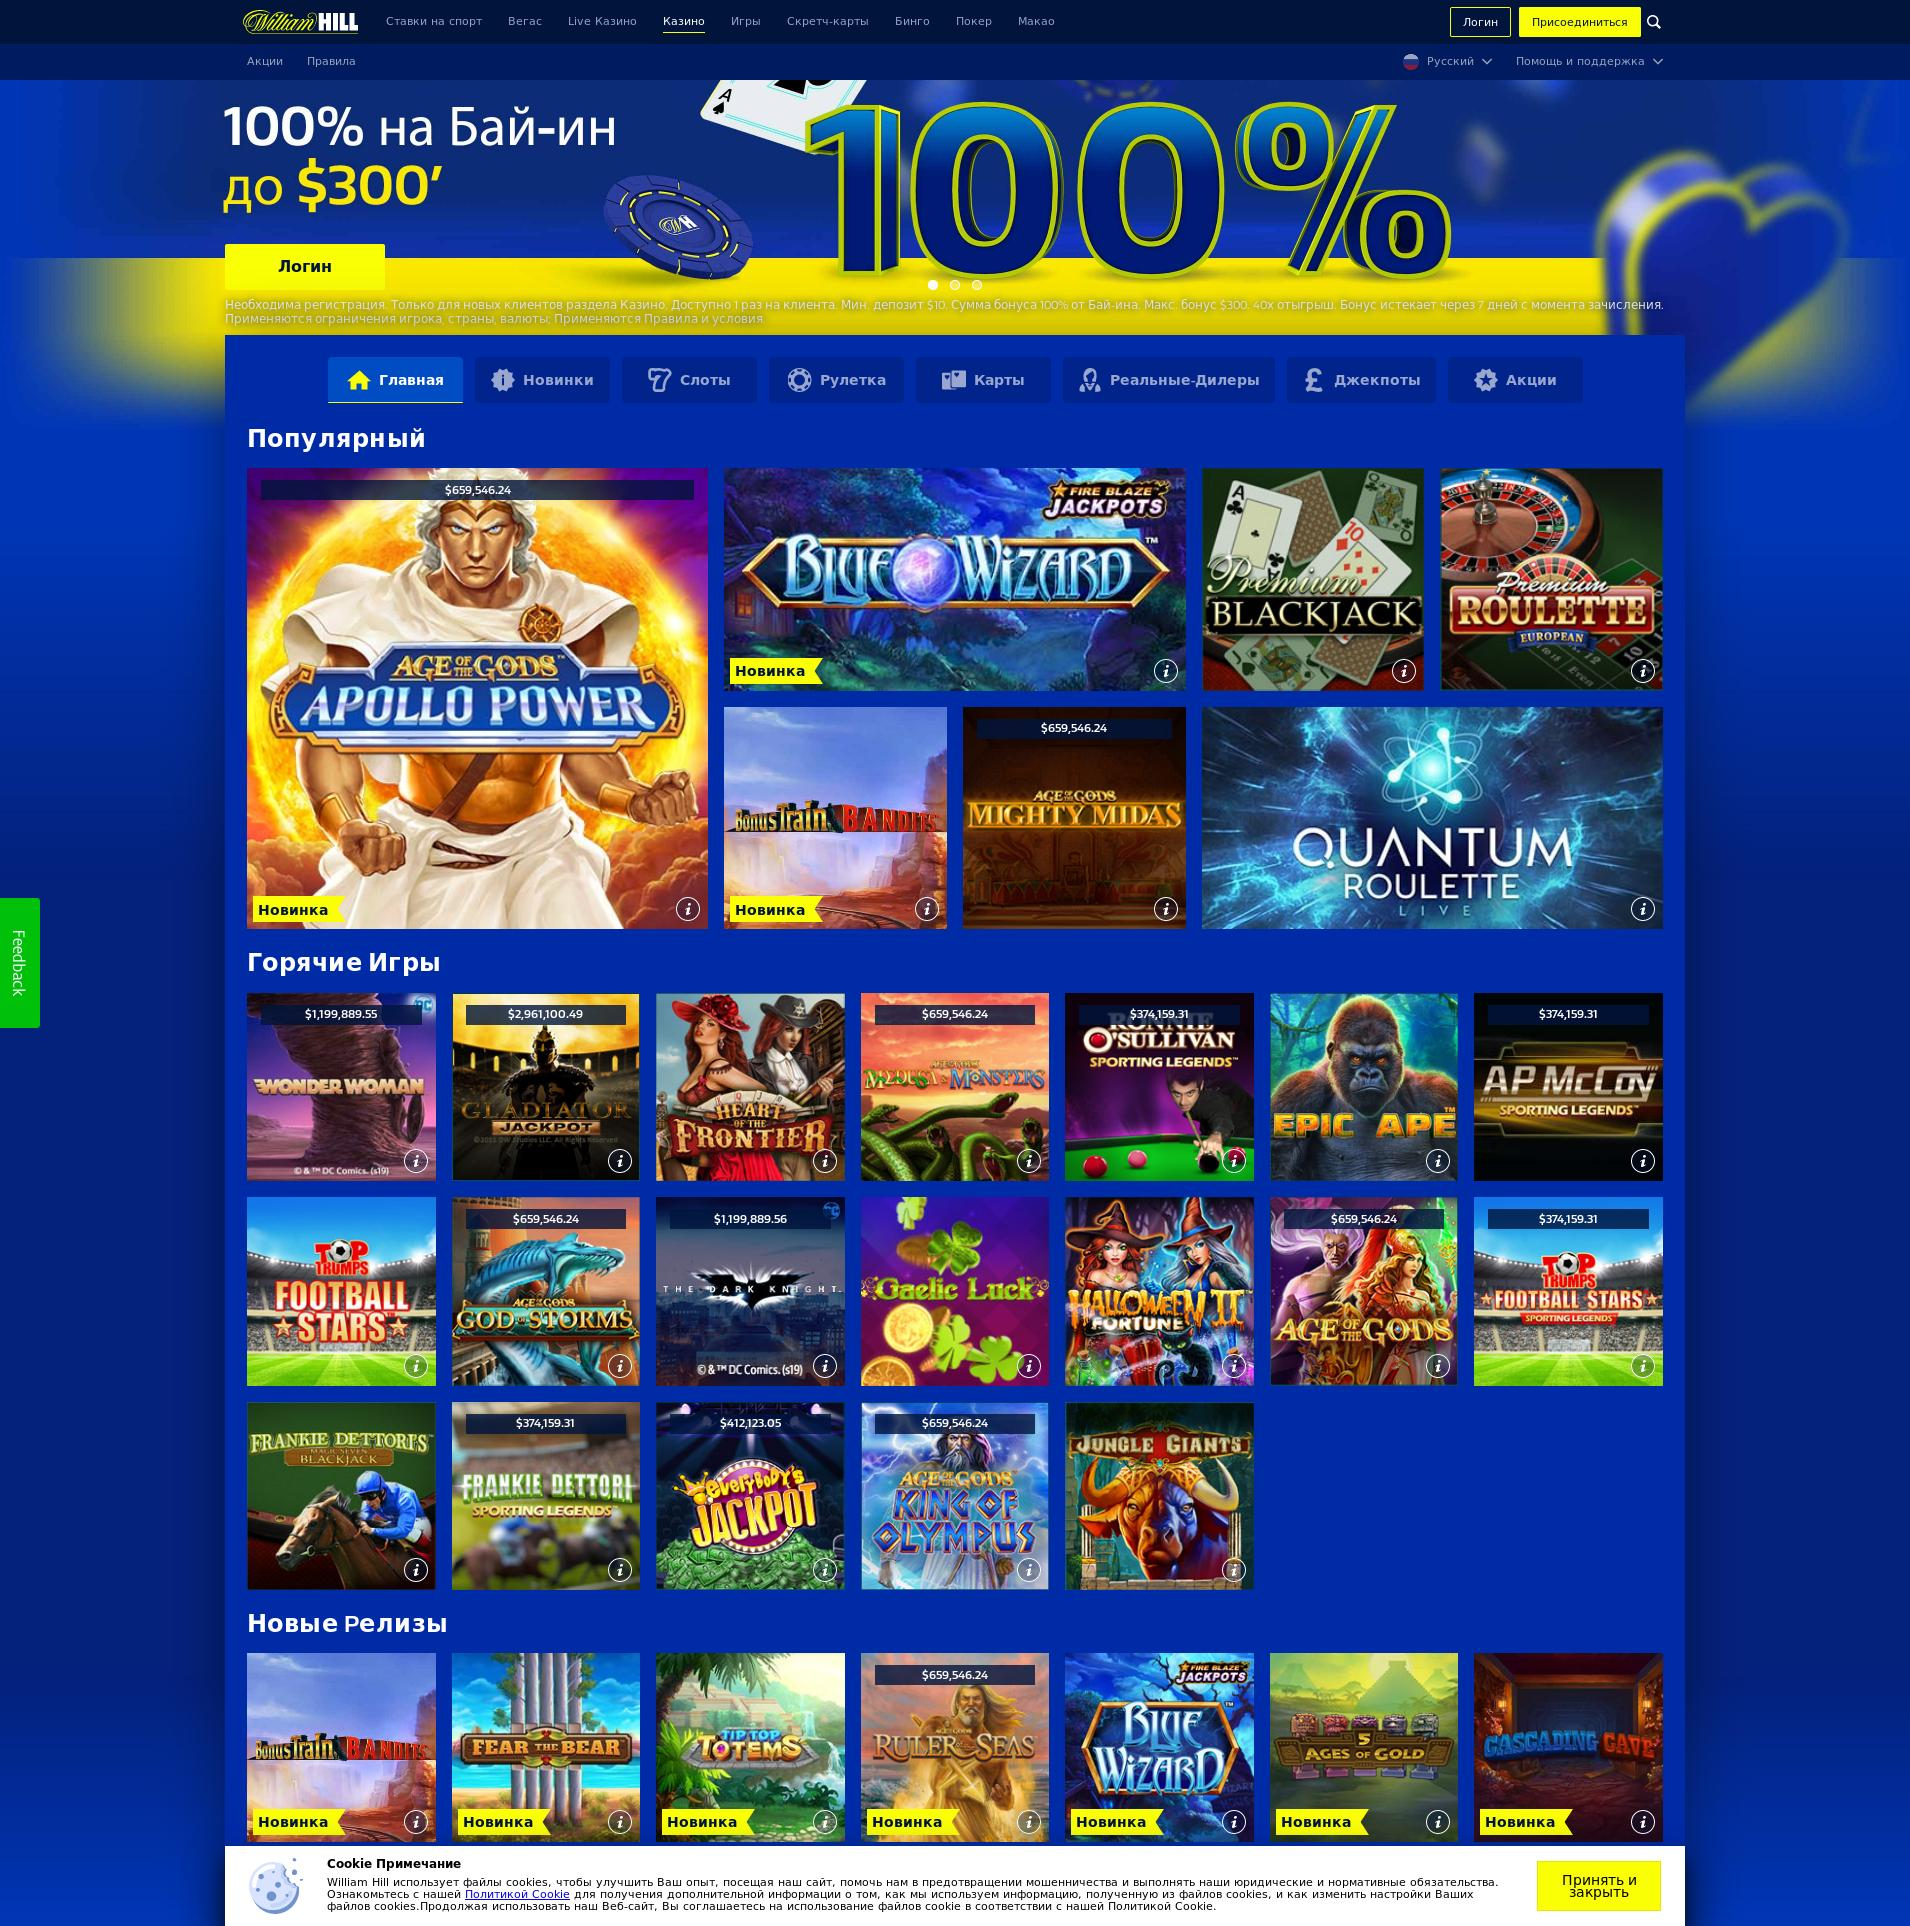 Casino screen Lobby 2019-10-17 for Ukraine